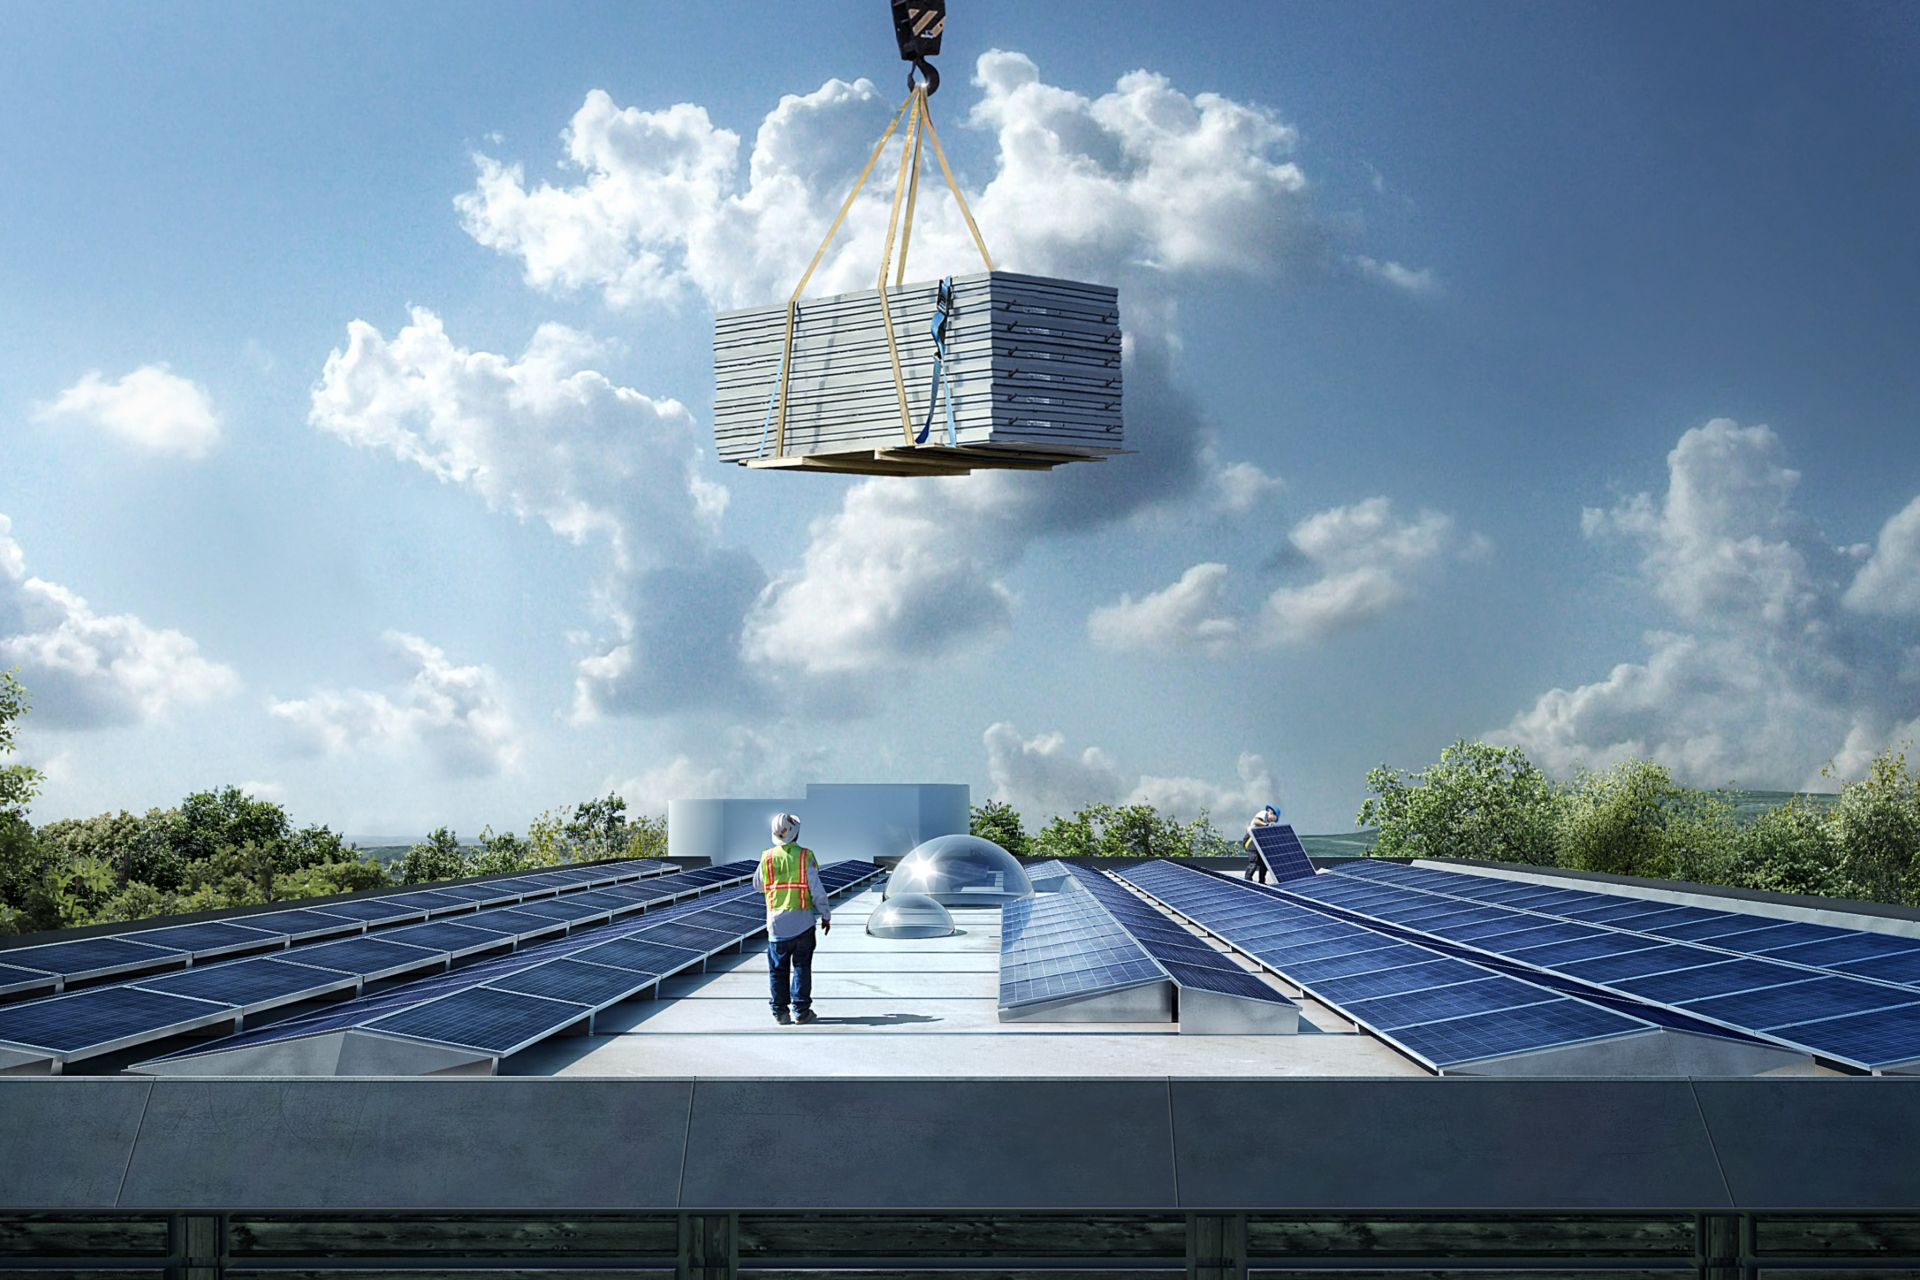 Installing solar panels on roof of Kjorbo powerhouse in Norway